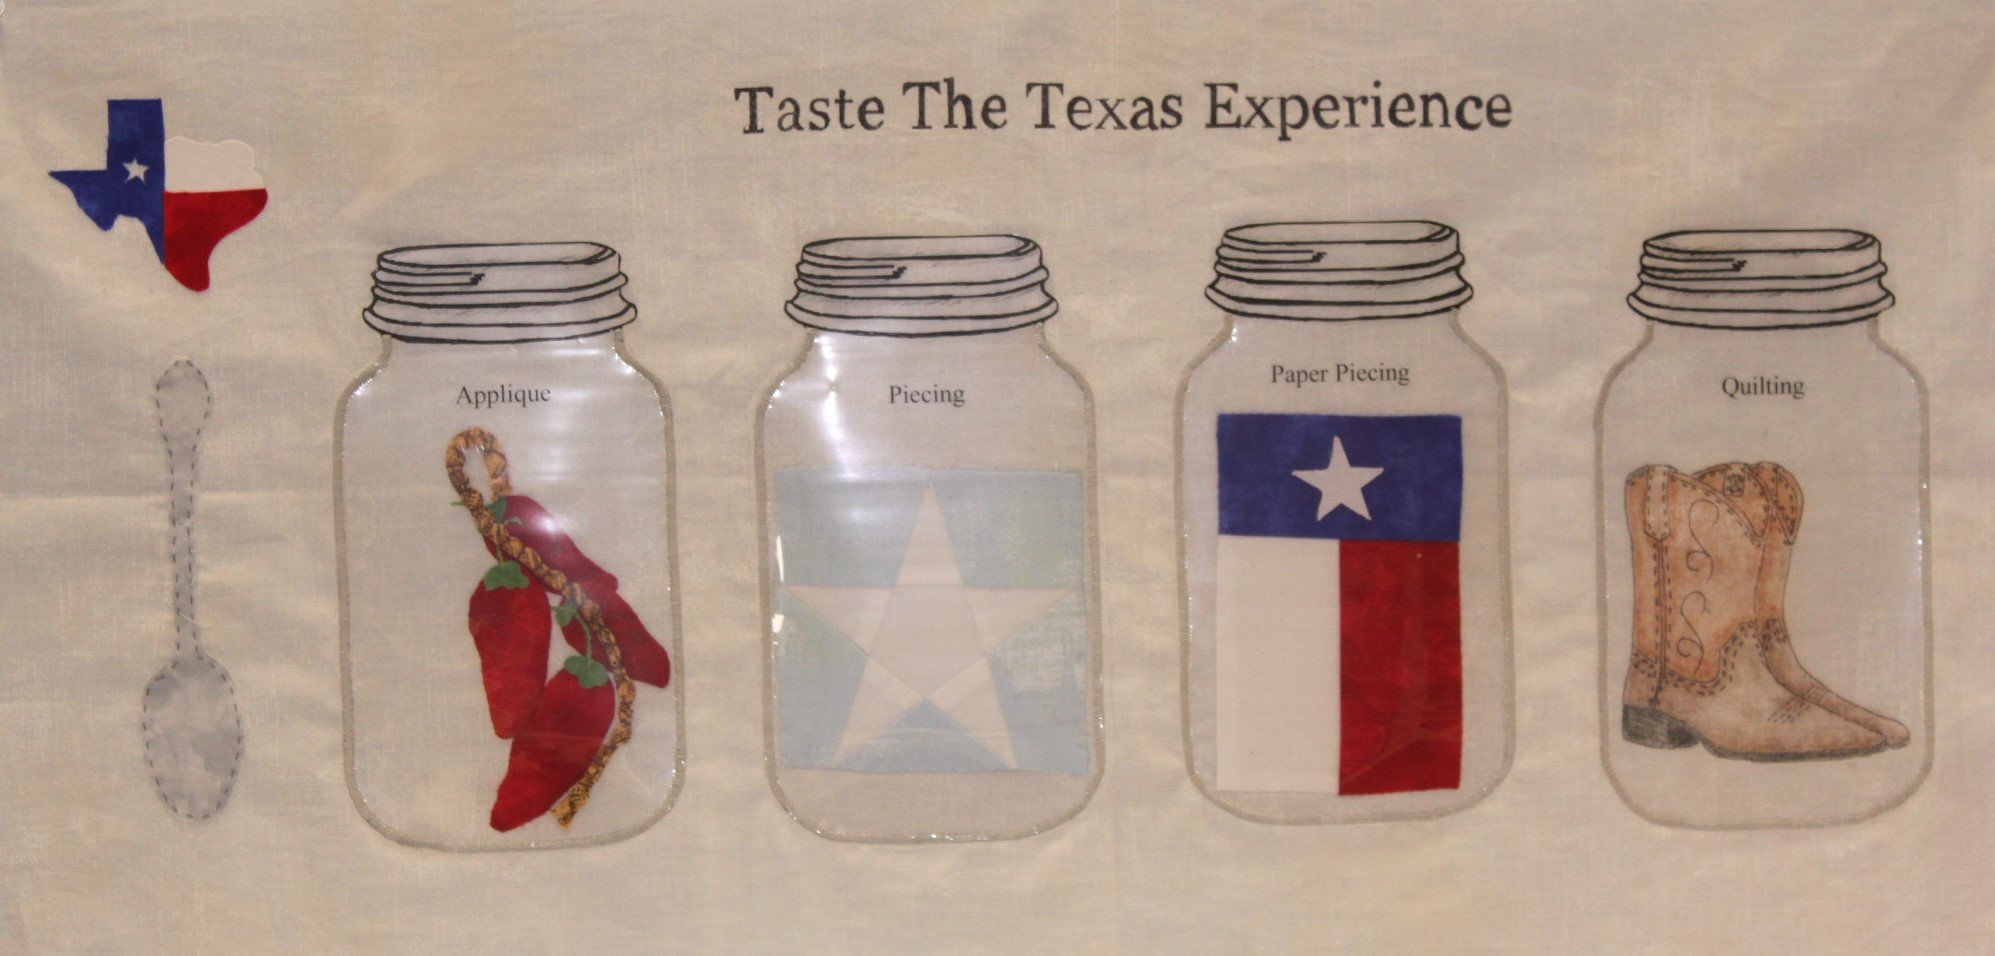 Row By Row Taste The Texas Experience 2019